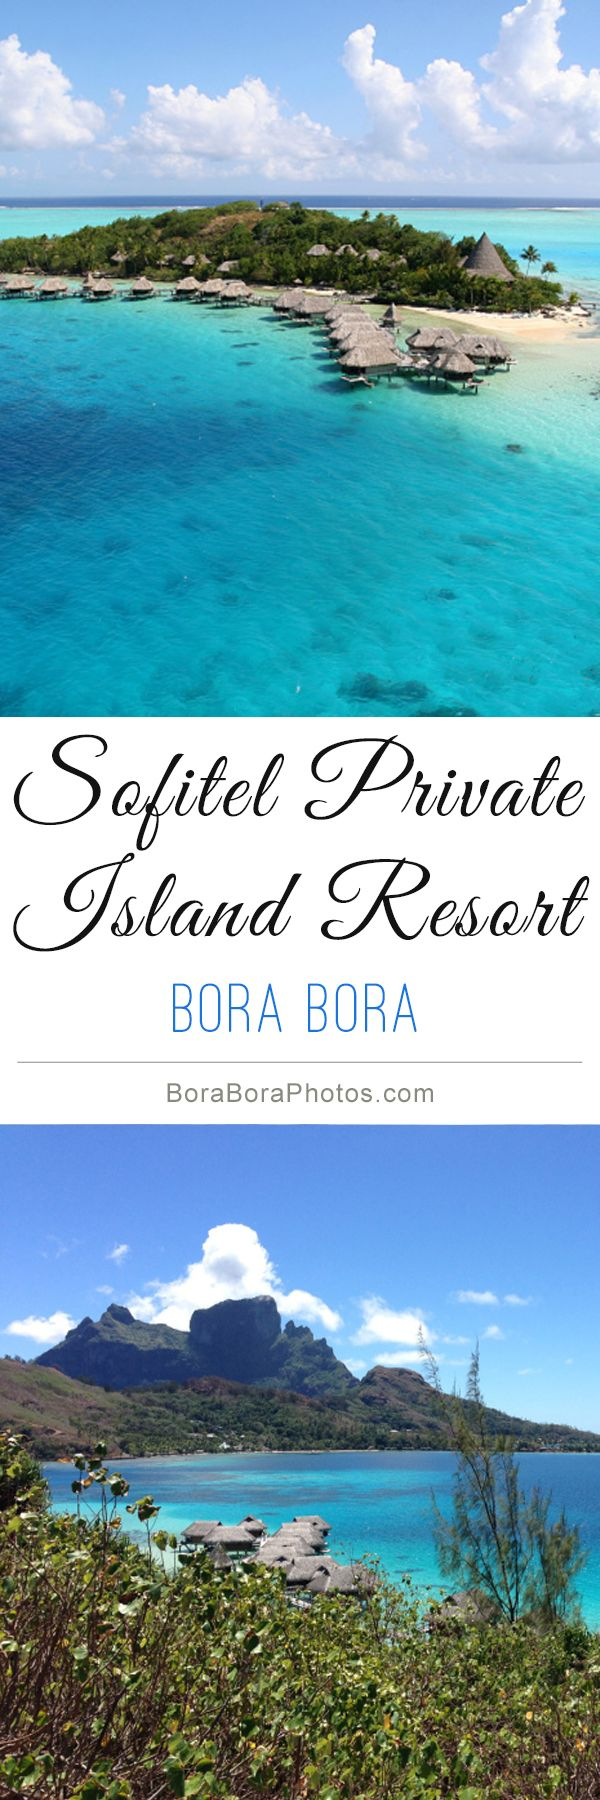 Sofitel Private Island Resort - This Bora Bora hotel emphasizes privacy and intimacy with only 30 luxury overwater bungalows located over the lagoon. Enjoy your tropical honeymoon or vacation with panoramic views and a relaxing holistic spa.